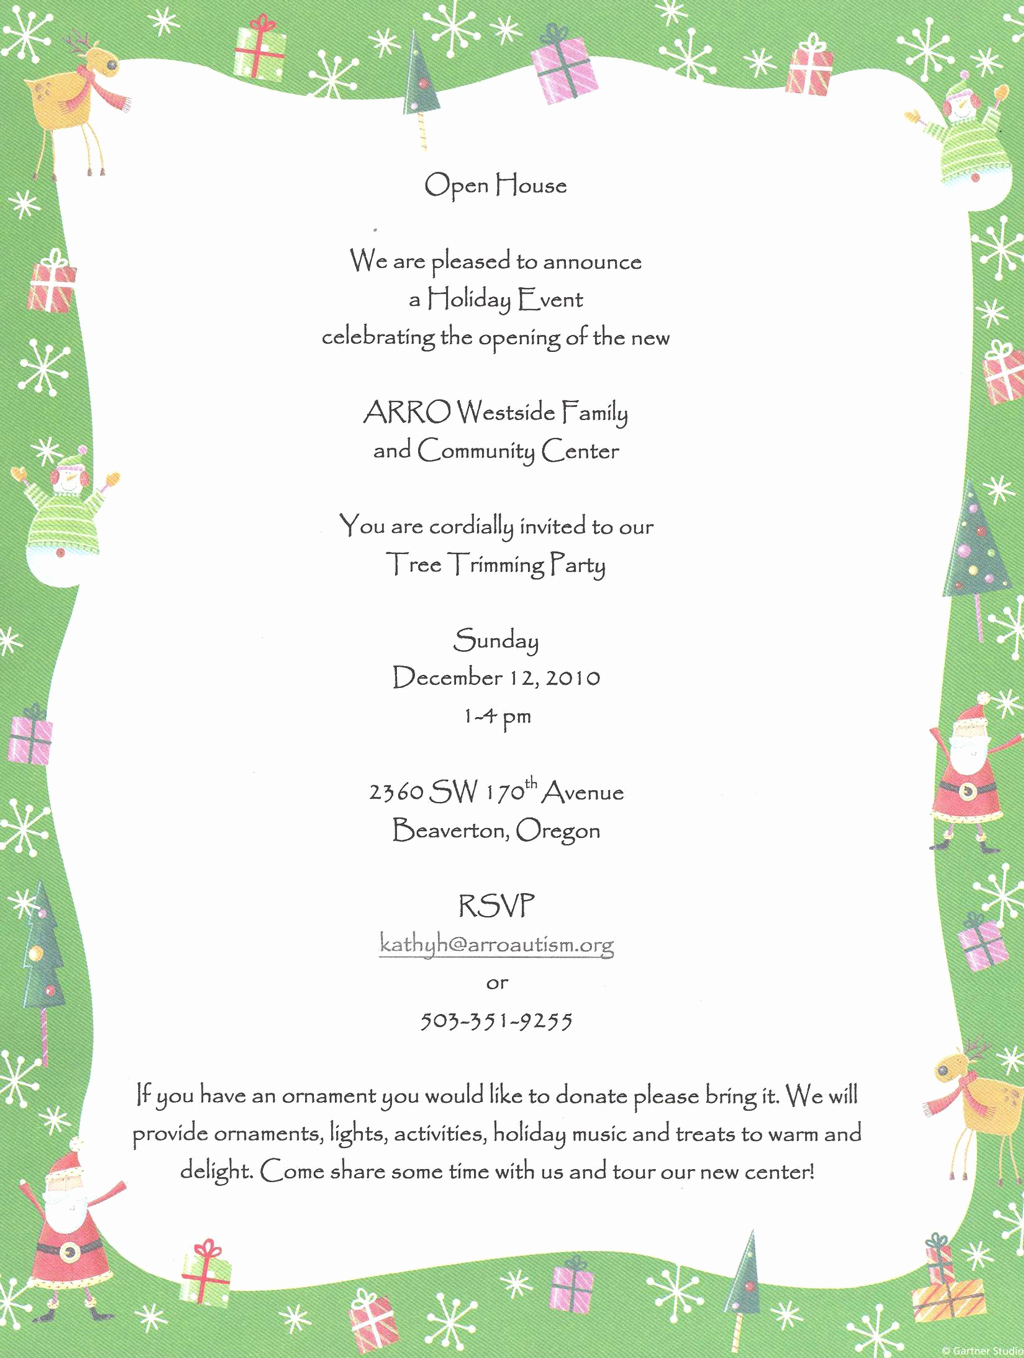 Open House Party Invitation Wording Lovely Graduation 2014 Open House Ideas